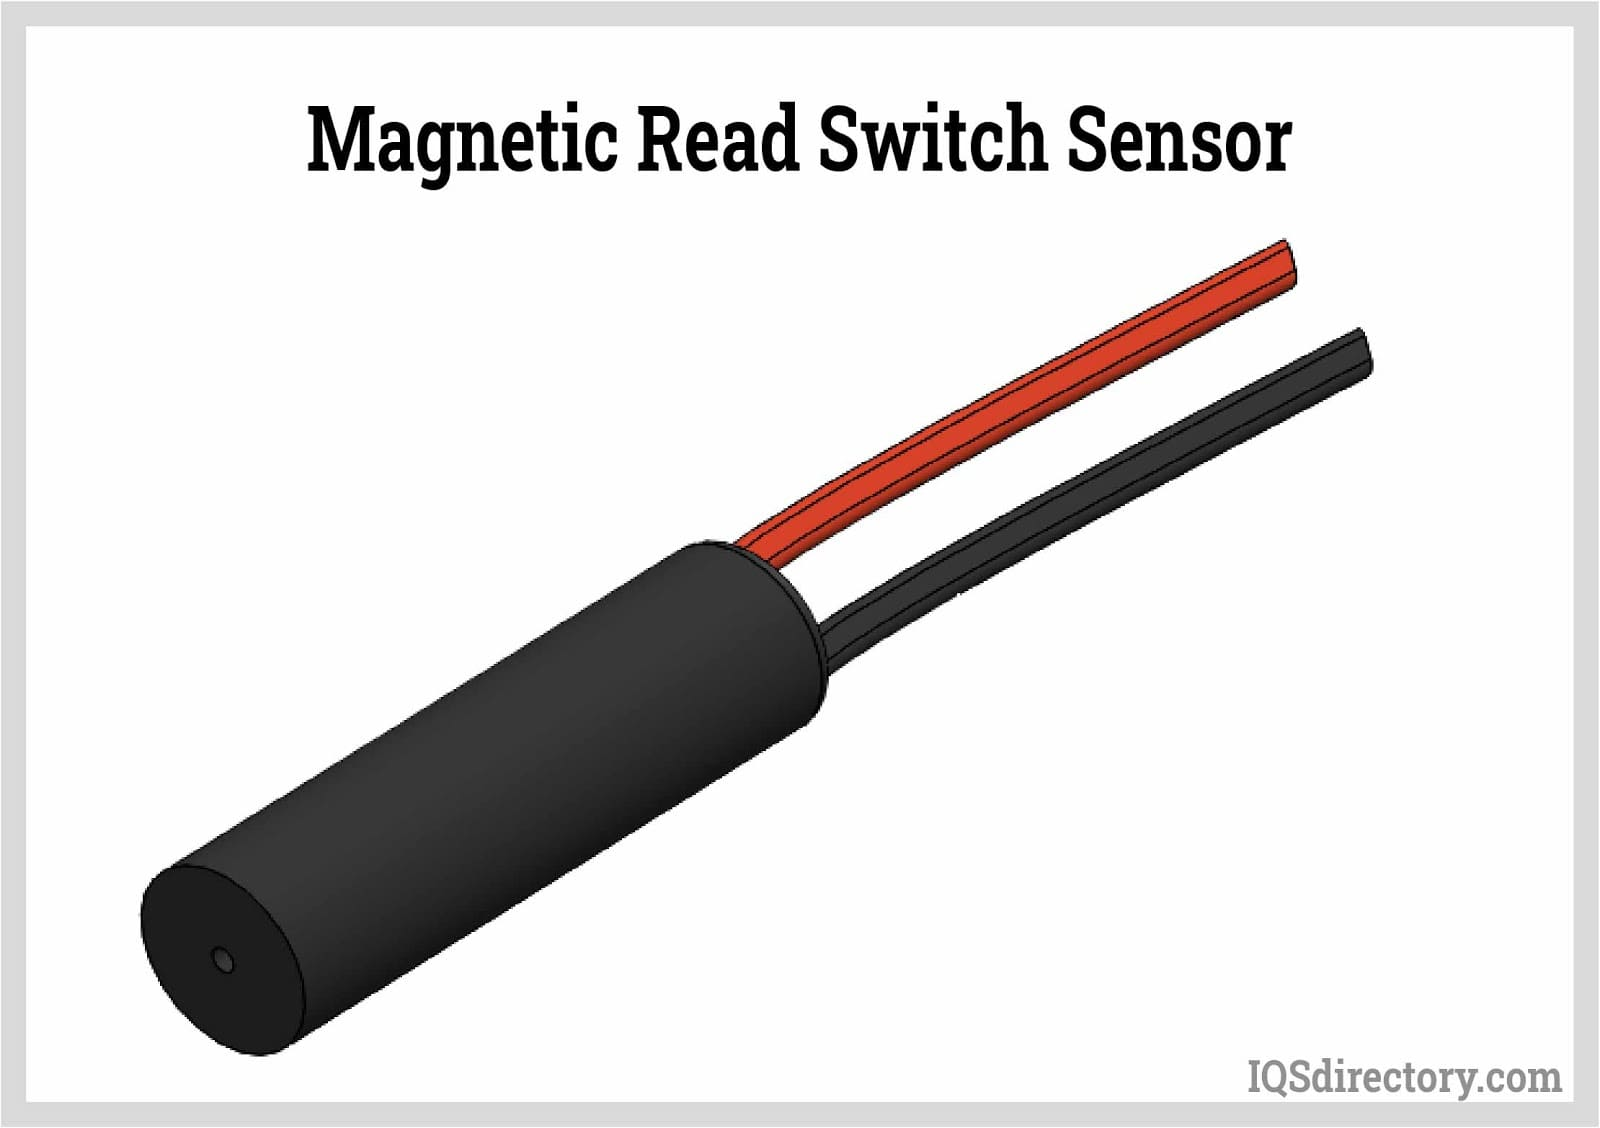 Magnetic Reed Switch Sensor